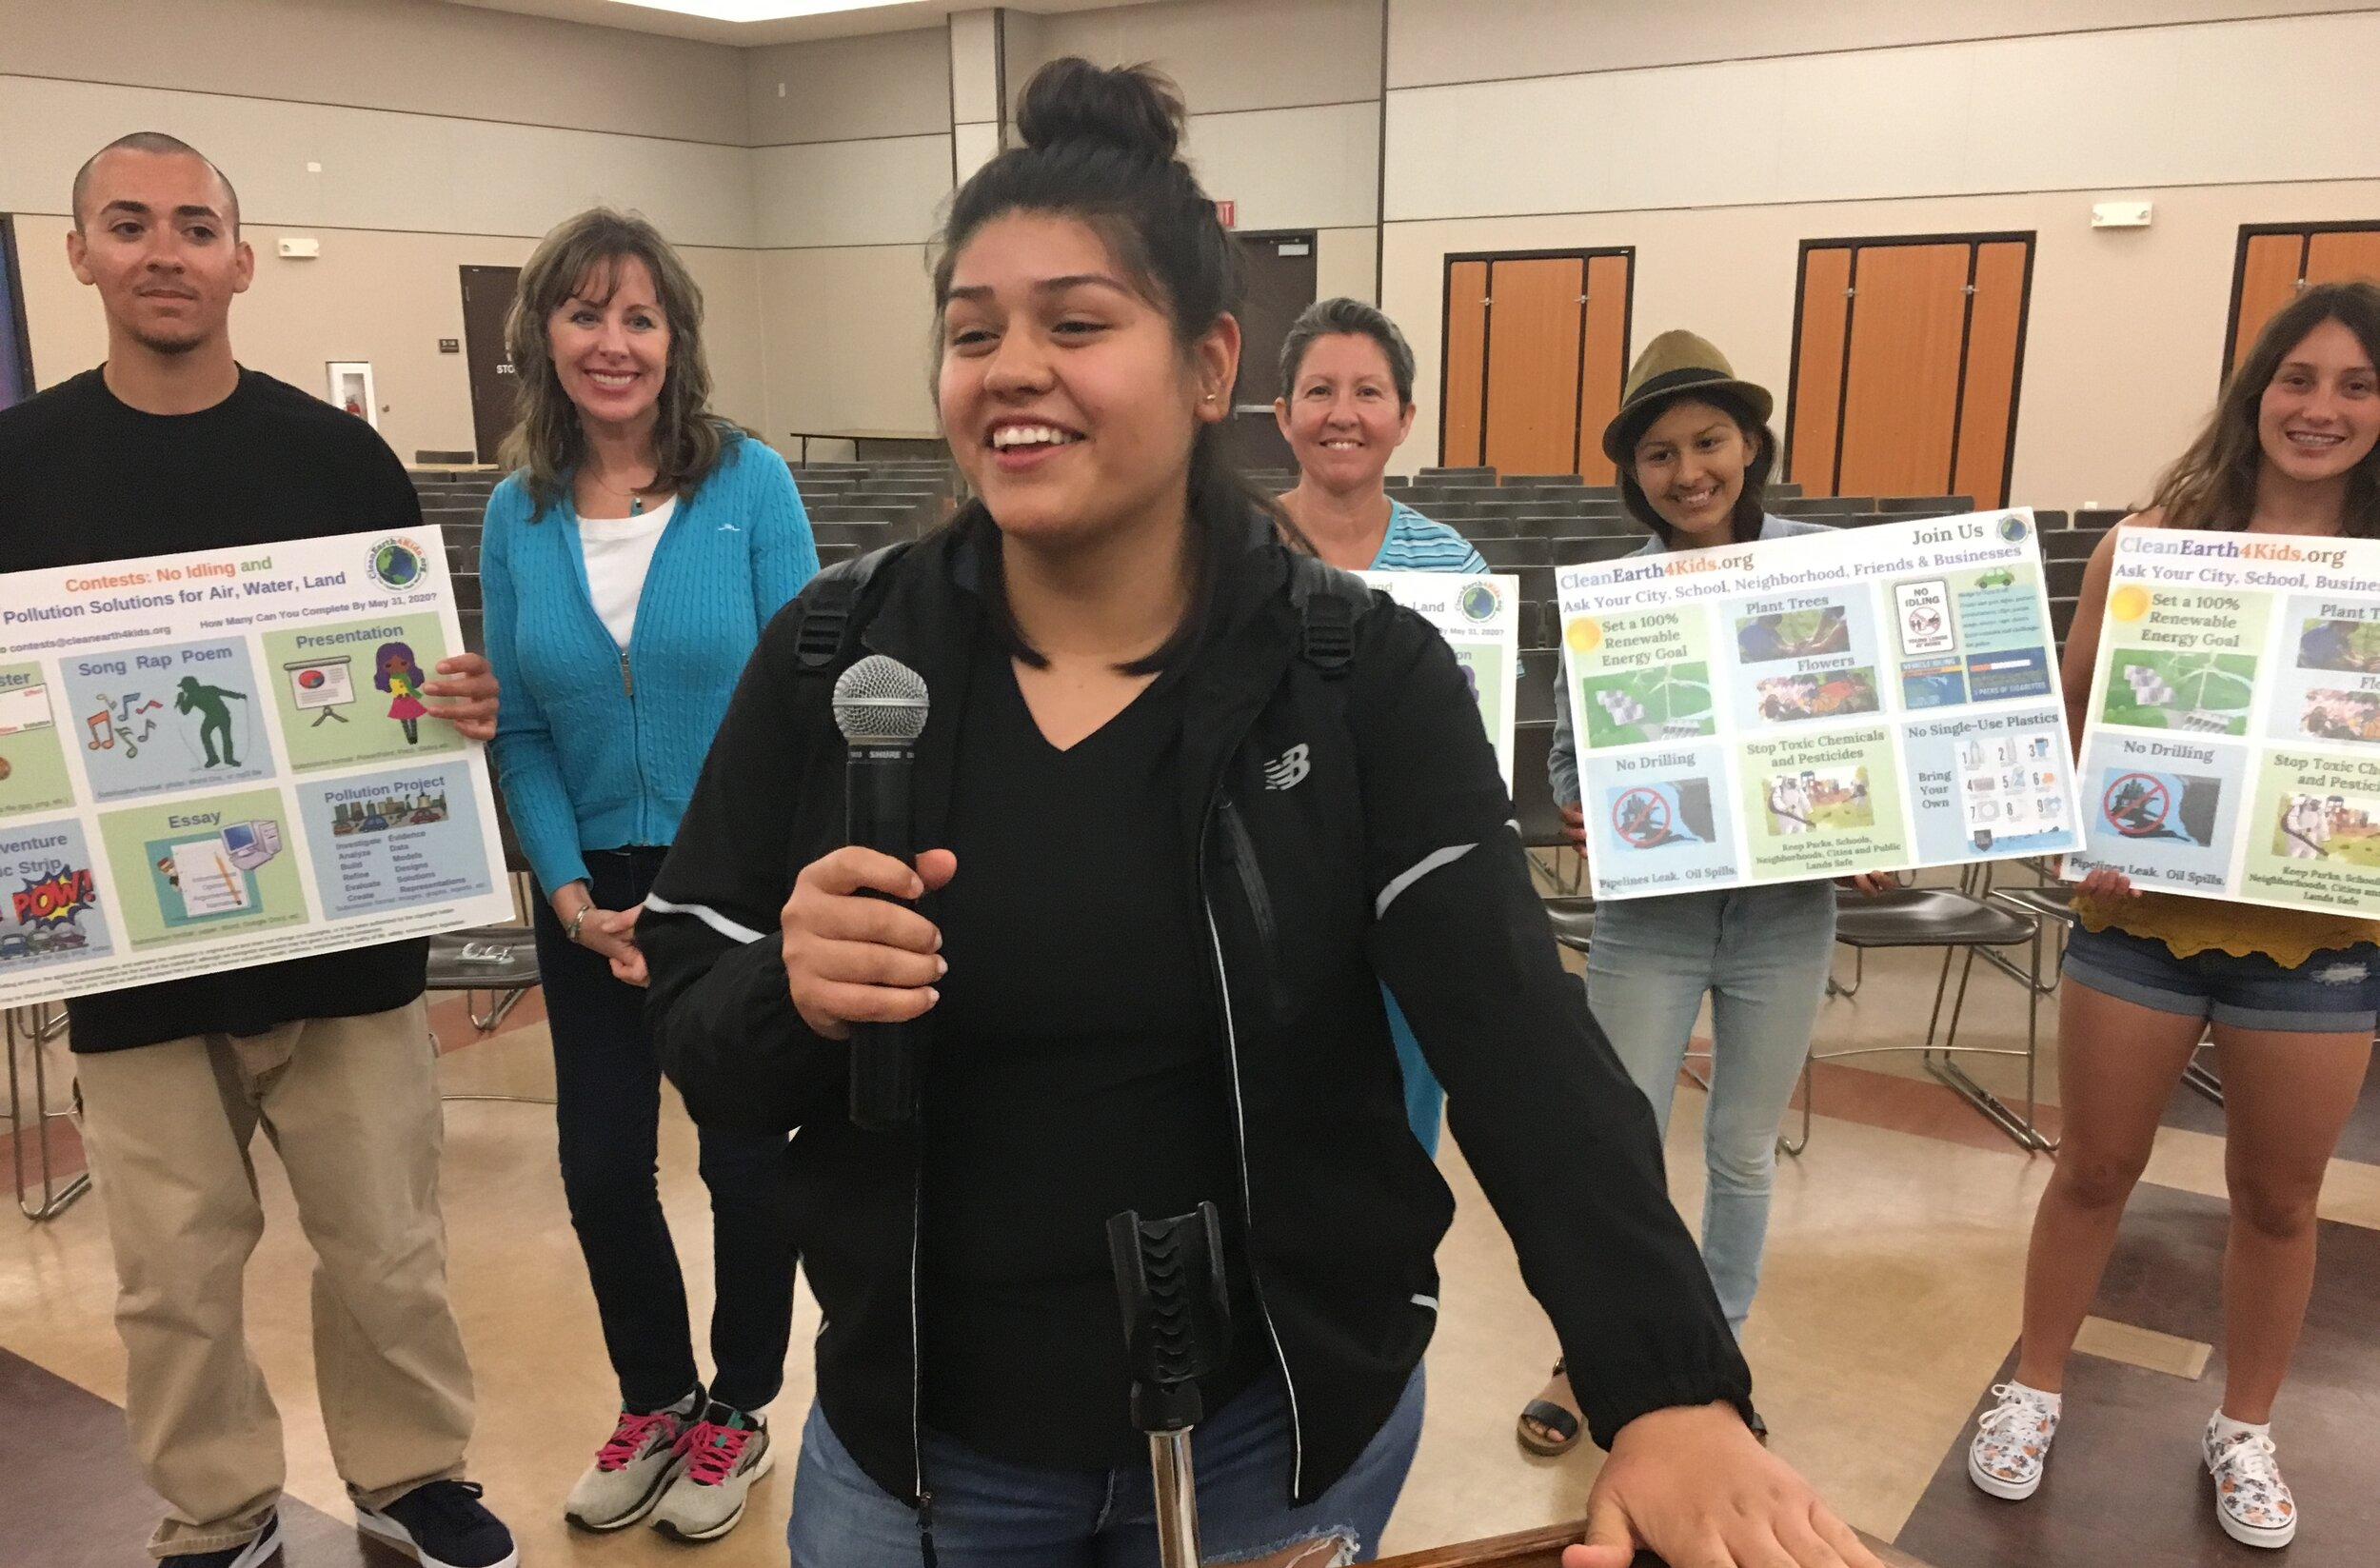 CleanEarth4Kids helped pass a Climate Resolution in Oceanside Unified